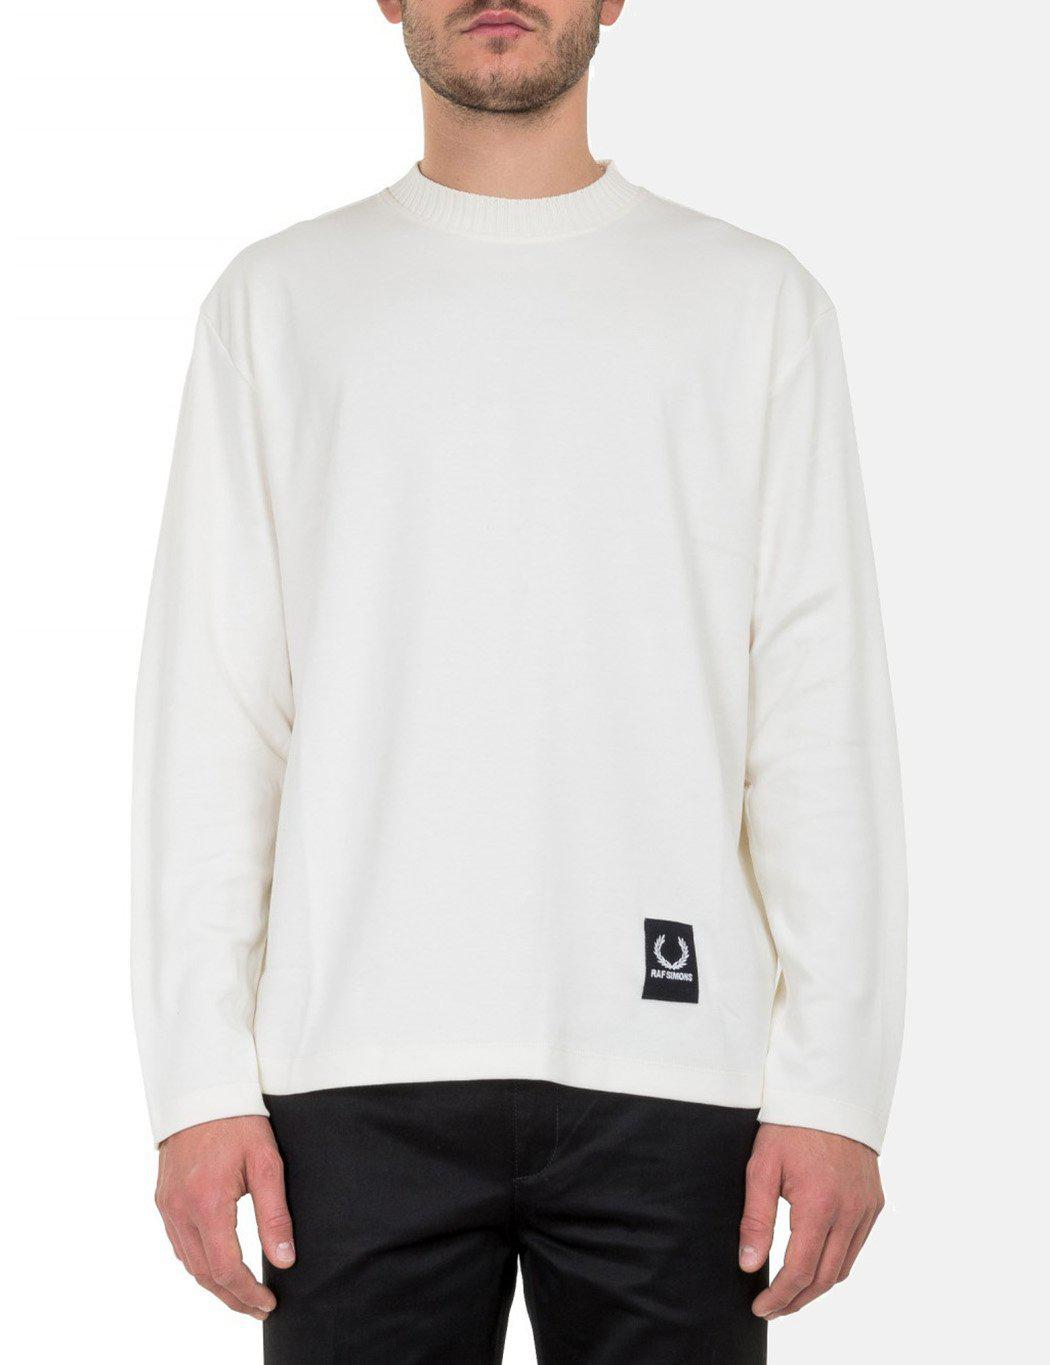 9d02ecea Fred Perry X Raf Simons Jersey Long Sleeve T-shirt in White for Men ...